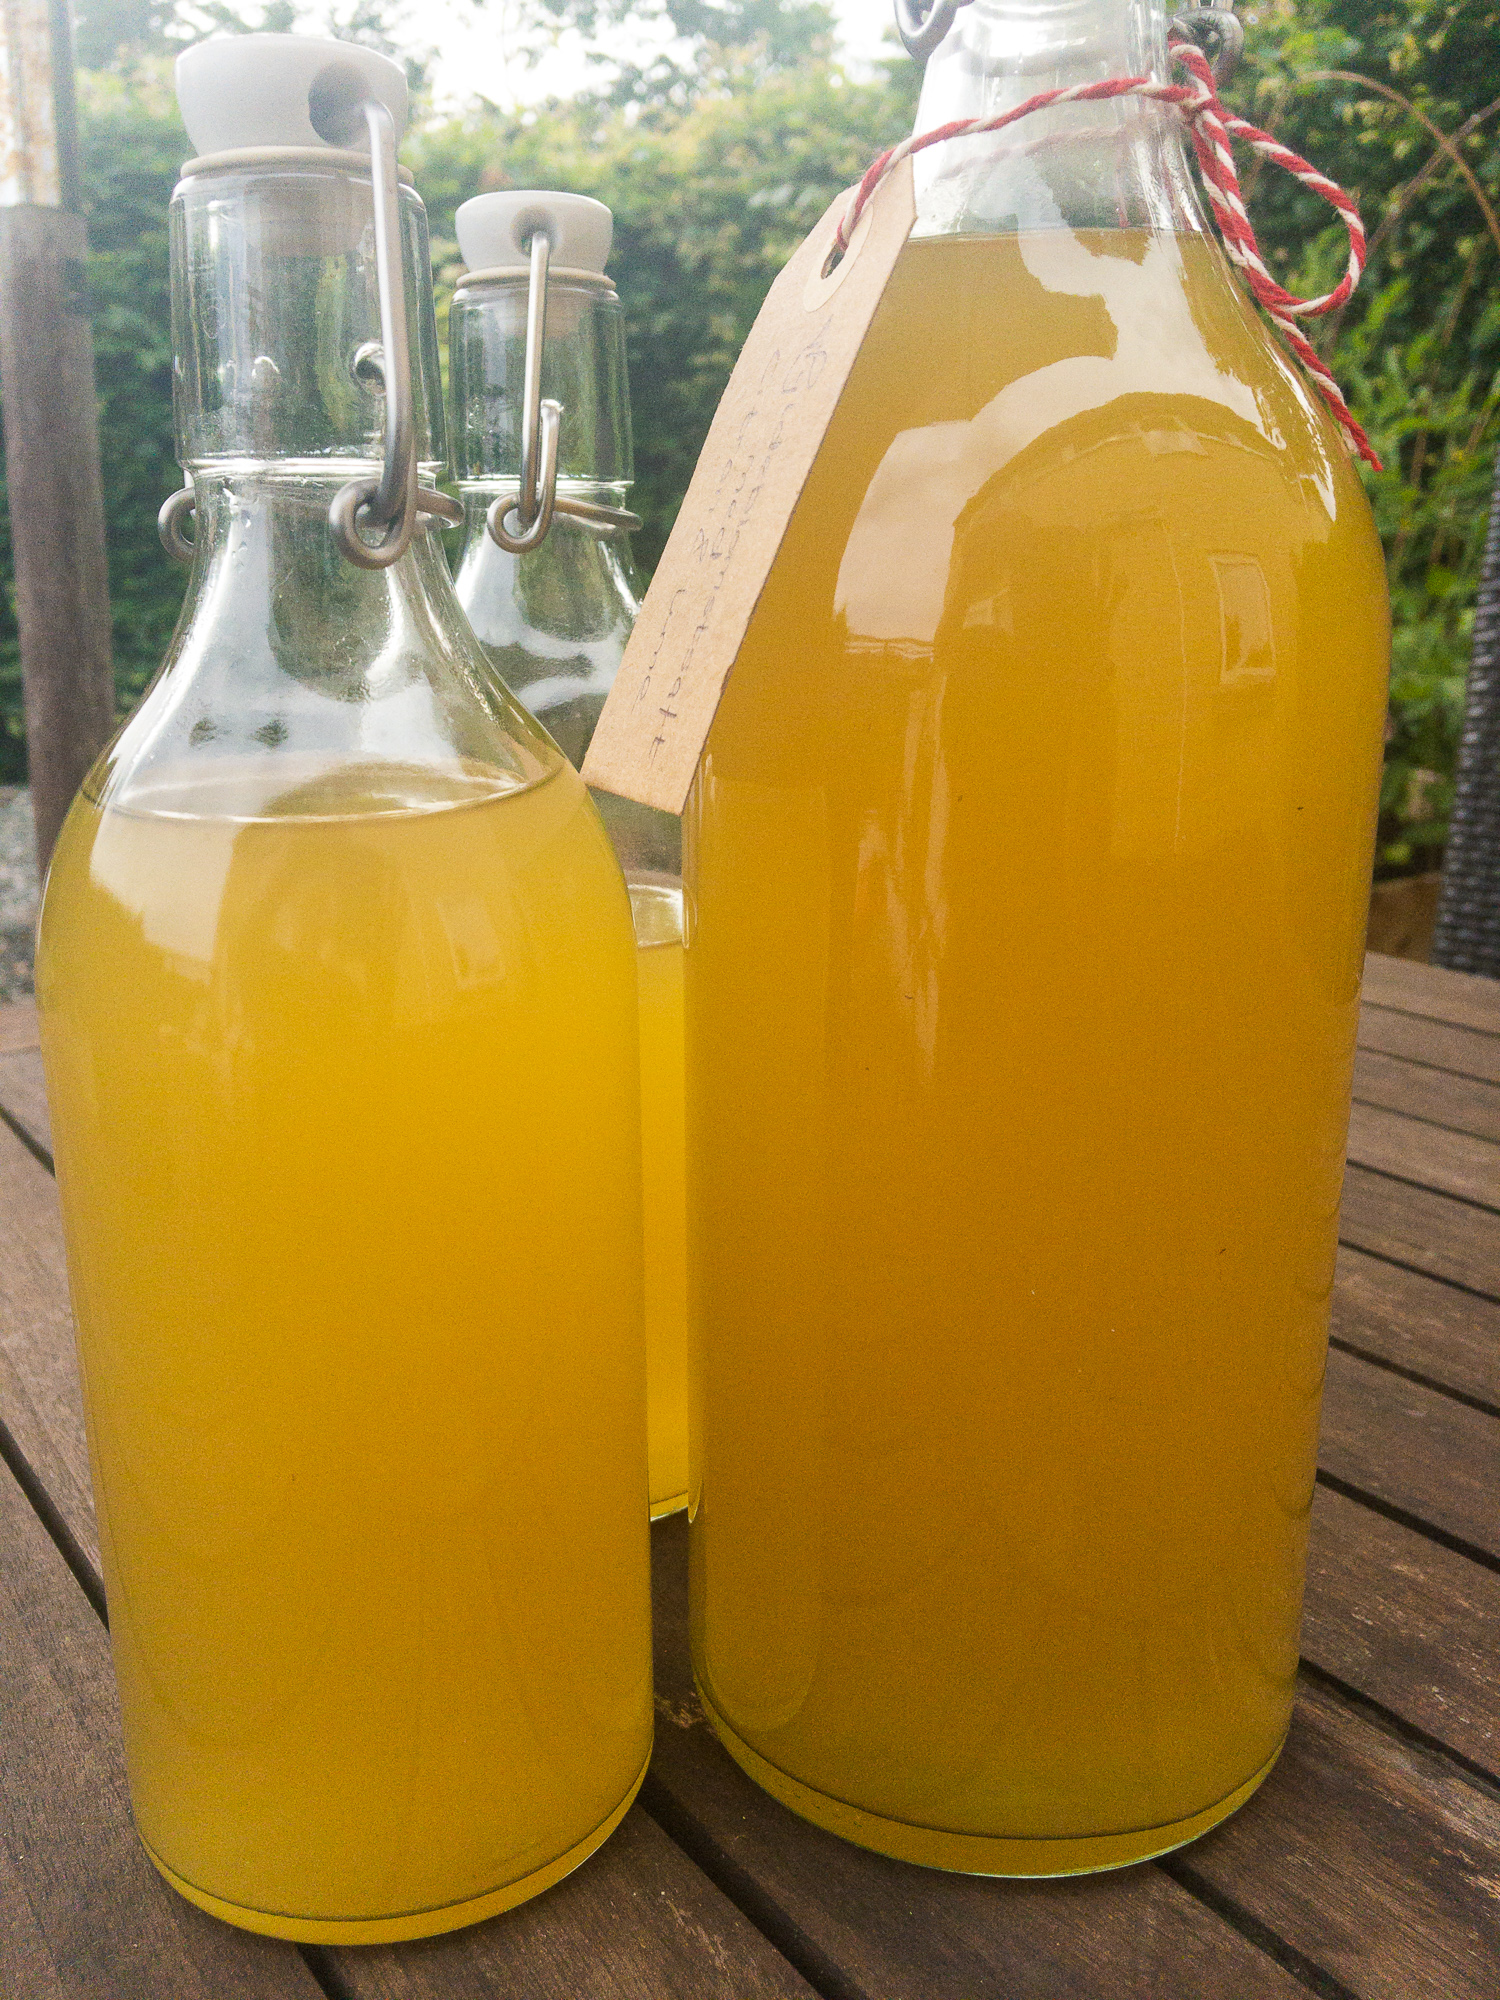 elderflower cordial in bottles